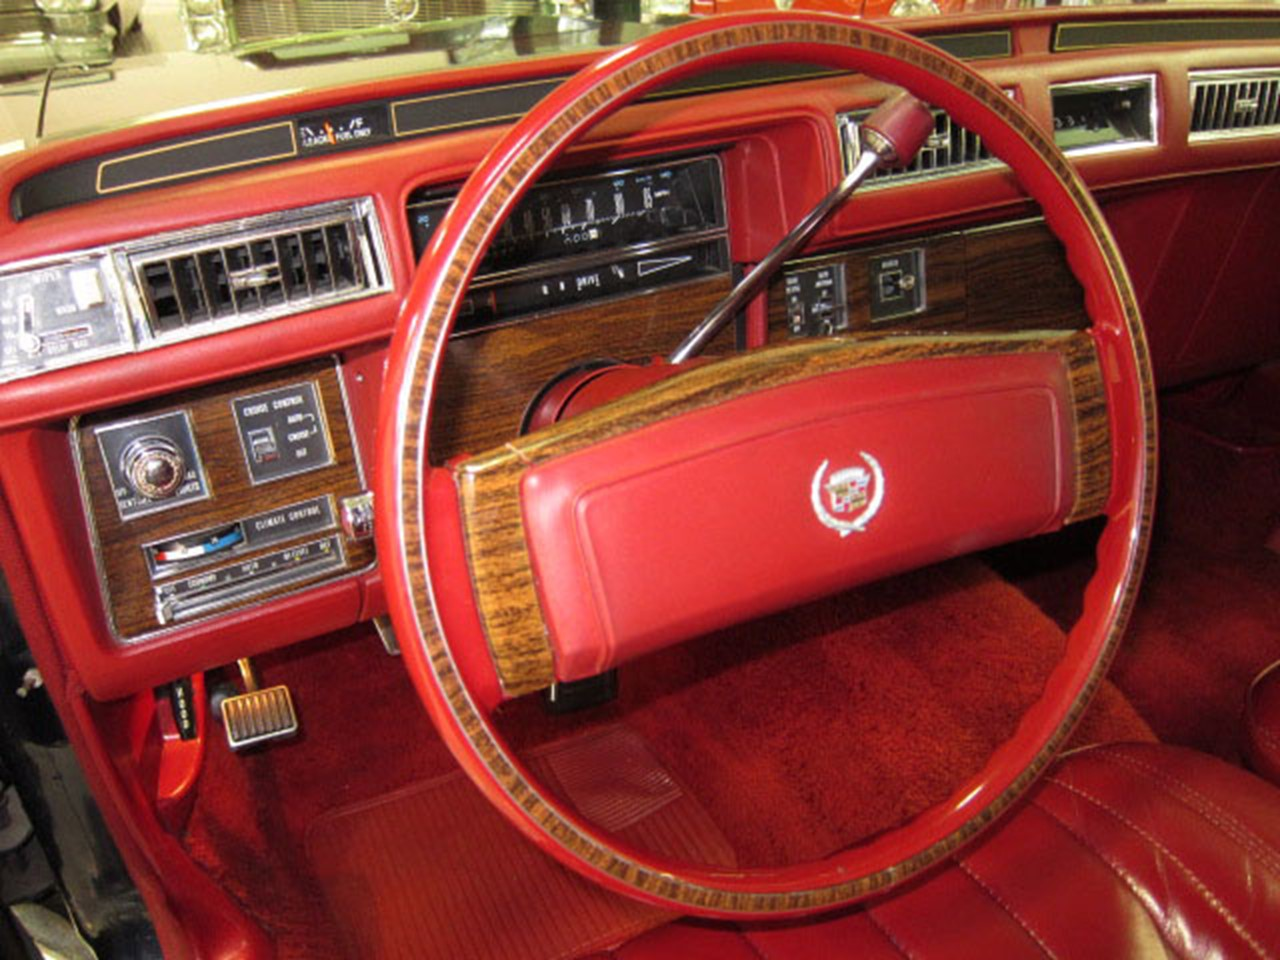 Fresh Metal 1978 Cadillac Seville Notoriousluxury Deville Hub Cap The Was Car Complete It Equipped As A World Class Luxury Sedan Almost Every Feature Abundantly Standard For